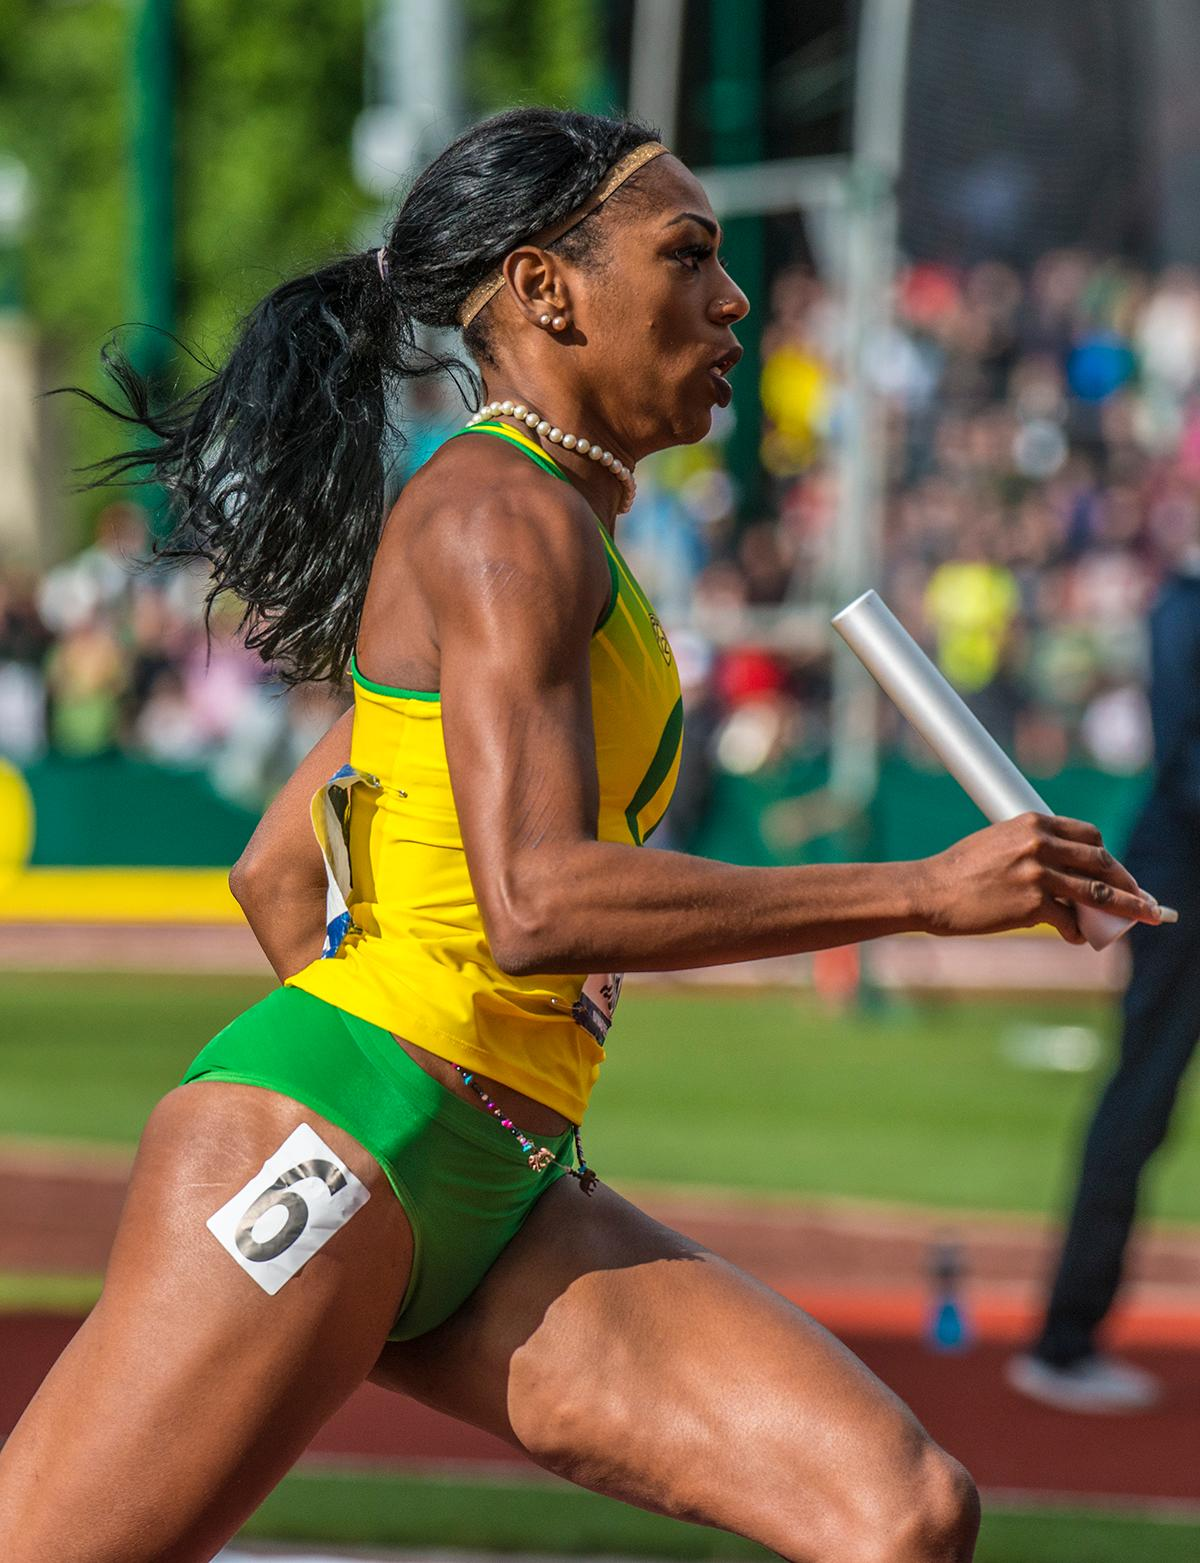 "University of Oregon Women's 4x400m Relay teammate Raevyn Rogers runs in the 4x400m Relay Final on day four of the NCAA Division I Outdoor Track and Field Championship at Hayward Field. The University of Oregon Women's Track team set a new collegiate best of 3:23.13 in the 4x400 Relay to clinch the overall win with a cumulative score of 64 points in the NCAA Division I Outdoor Track and Field Championship, as well as becoming the first school to ever win the ""Triple Crown"": the National Cross Country, the Indoor Track and Field, and the Outdoor Track and Field all in the same academic year. Georgia came in second overall with 62.2 points and Southern California took third place with 43 points. Photo by Rhianna Gelhart, Oregon News Lab"